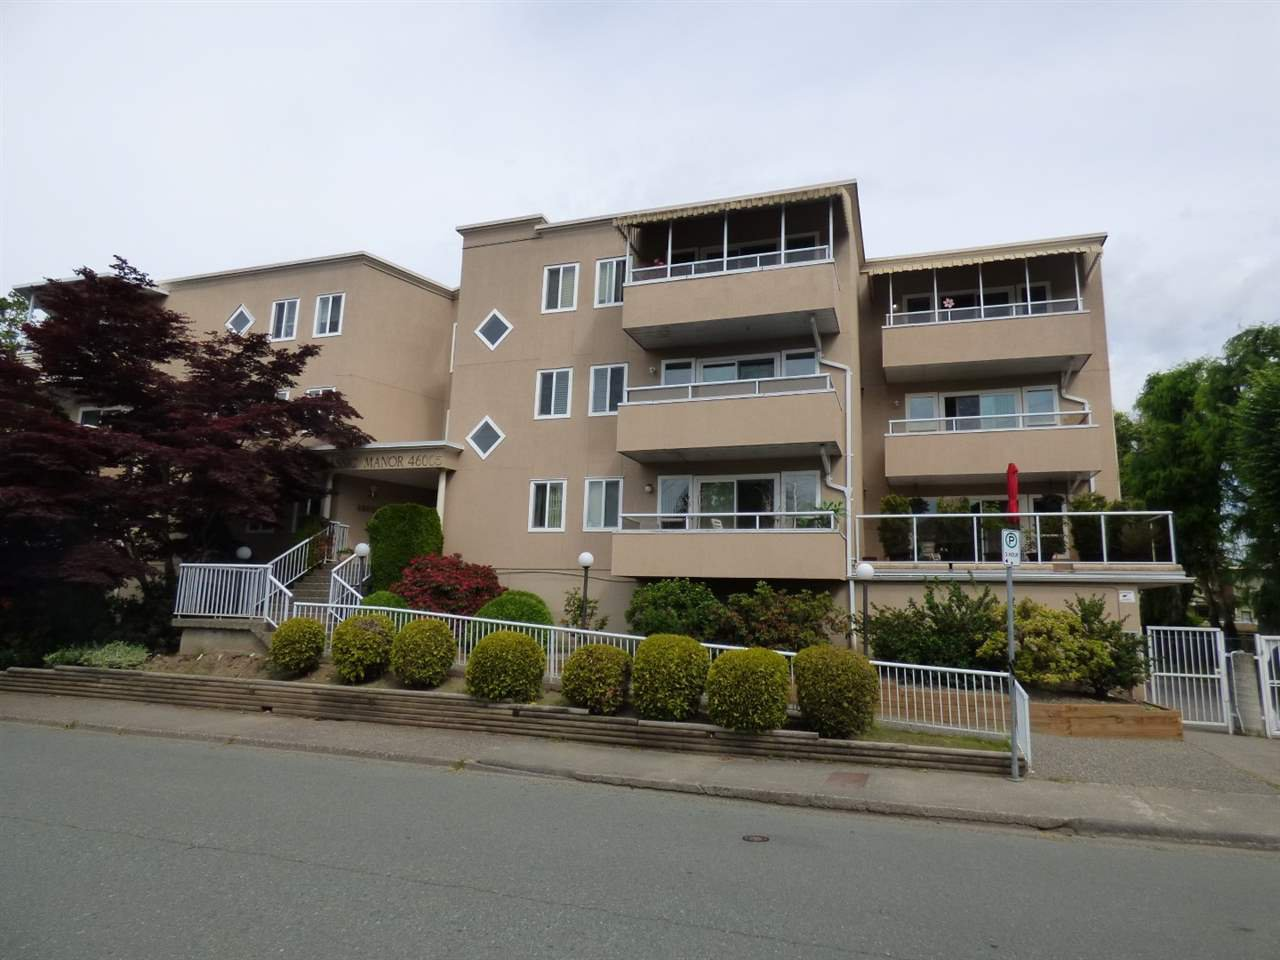 "Main Photo: 1 46005 BOLE Avenue in Chilliwack: Chilliwack N Yale-Well Condo for sale in ""Classic Manor"" : MLS®# R2377307"